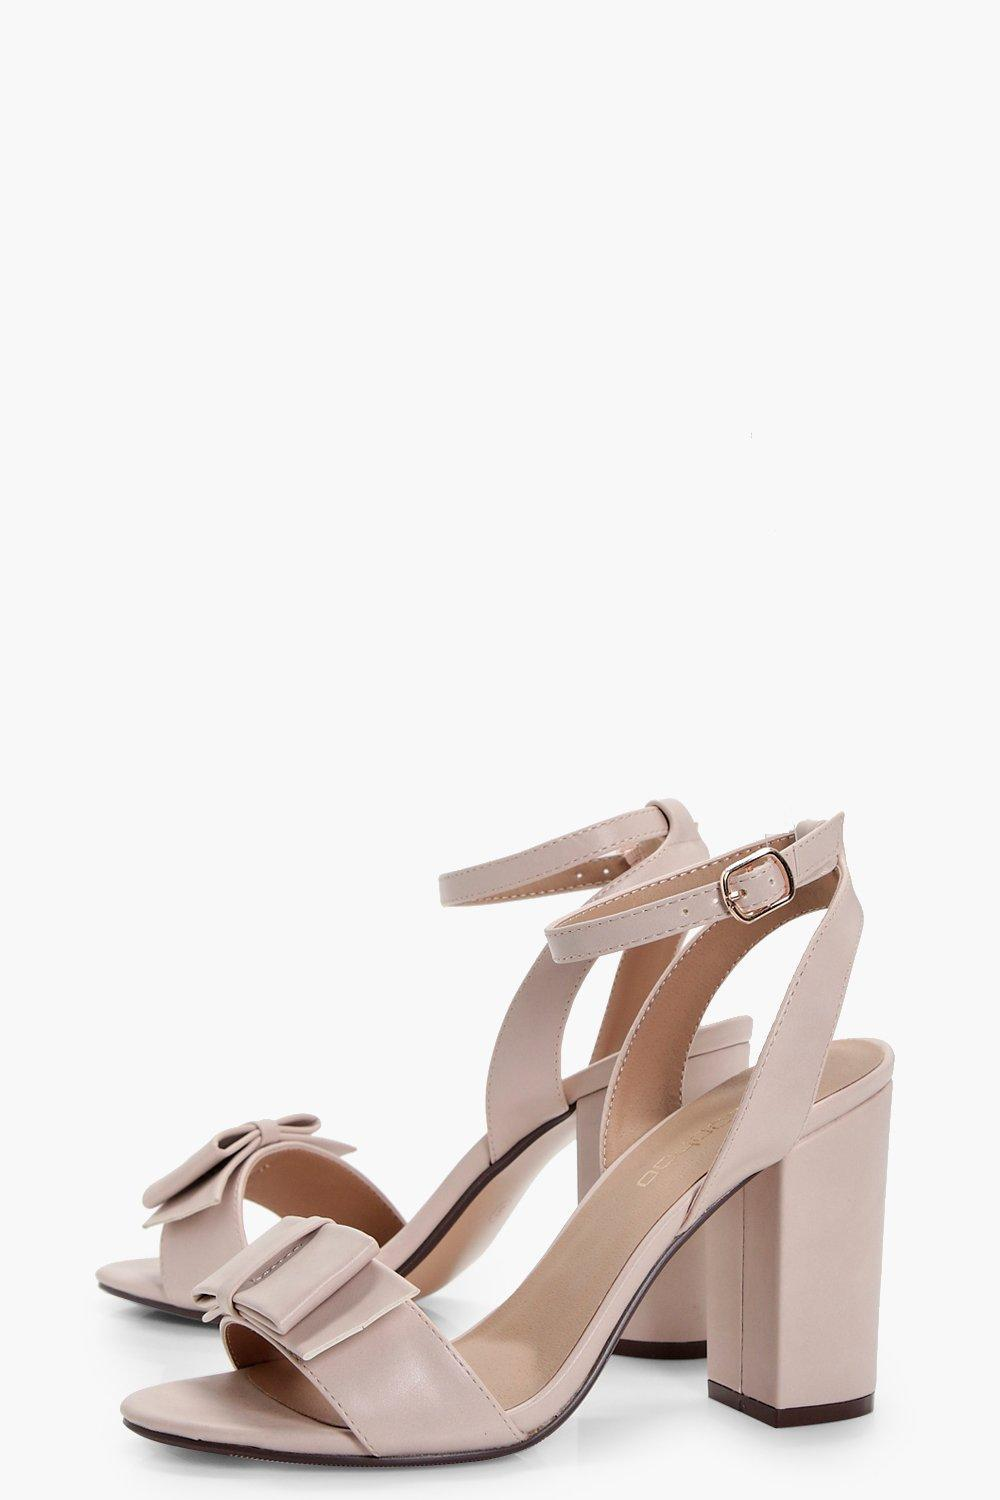 0ac2d6757b5c Lyst - Boohoo Lillie Bow Trim Block Heel in Natural